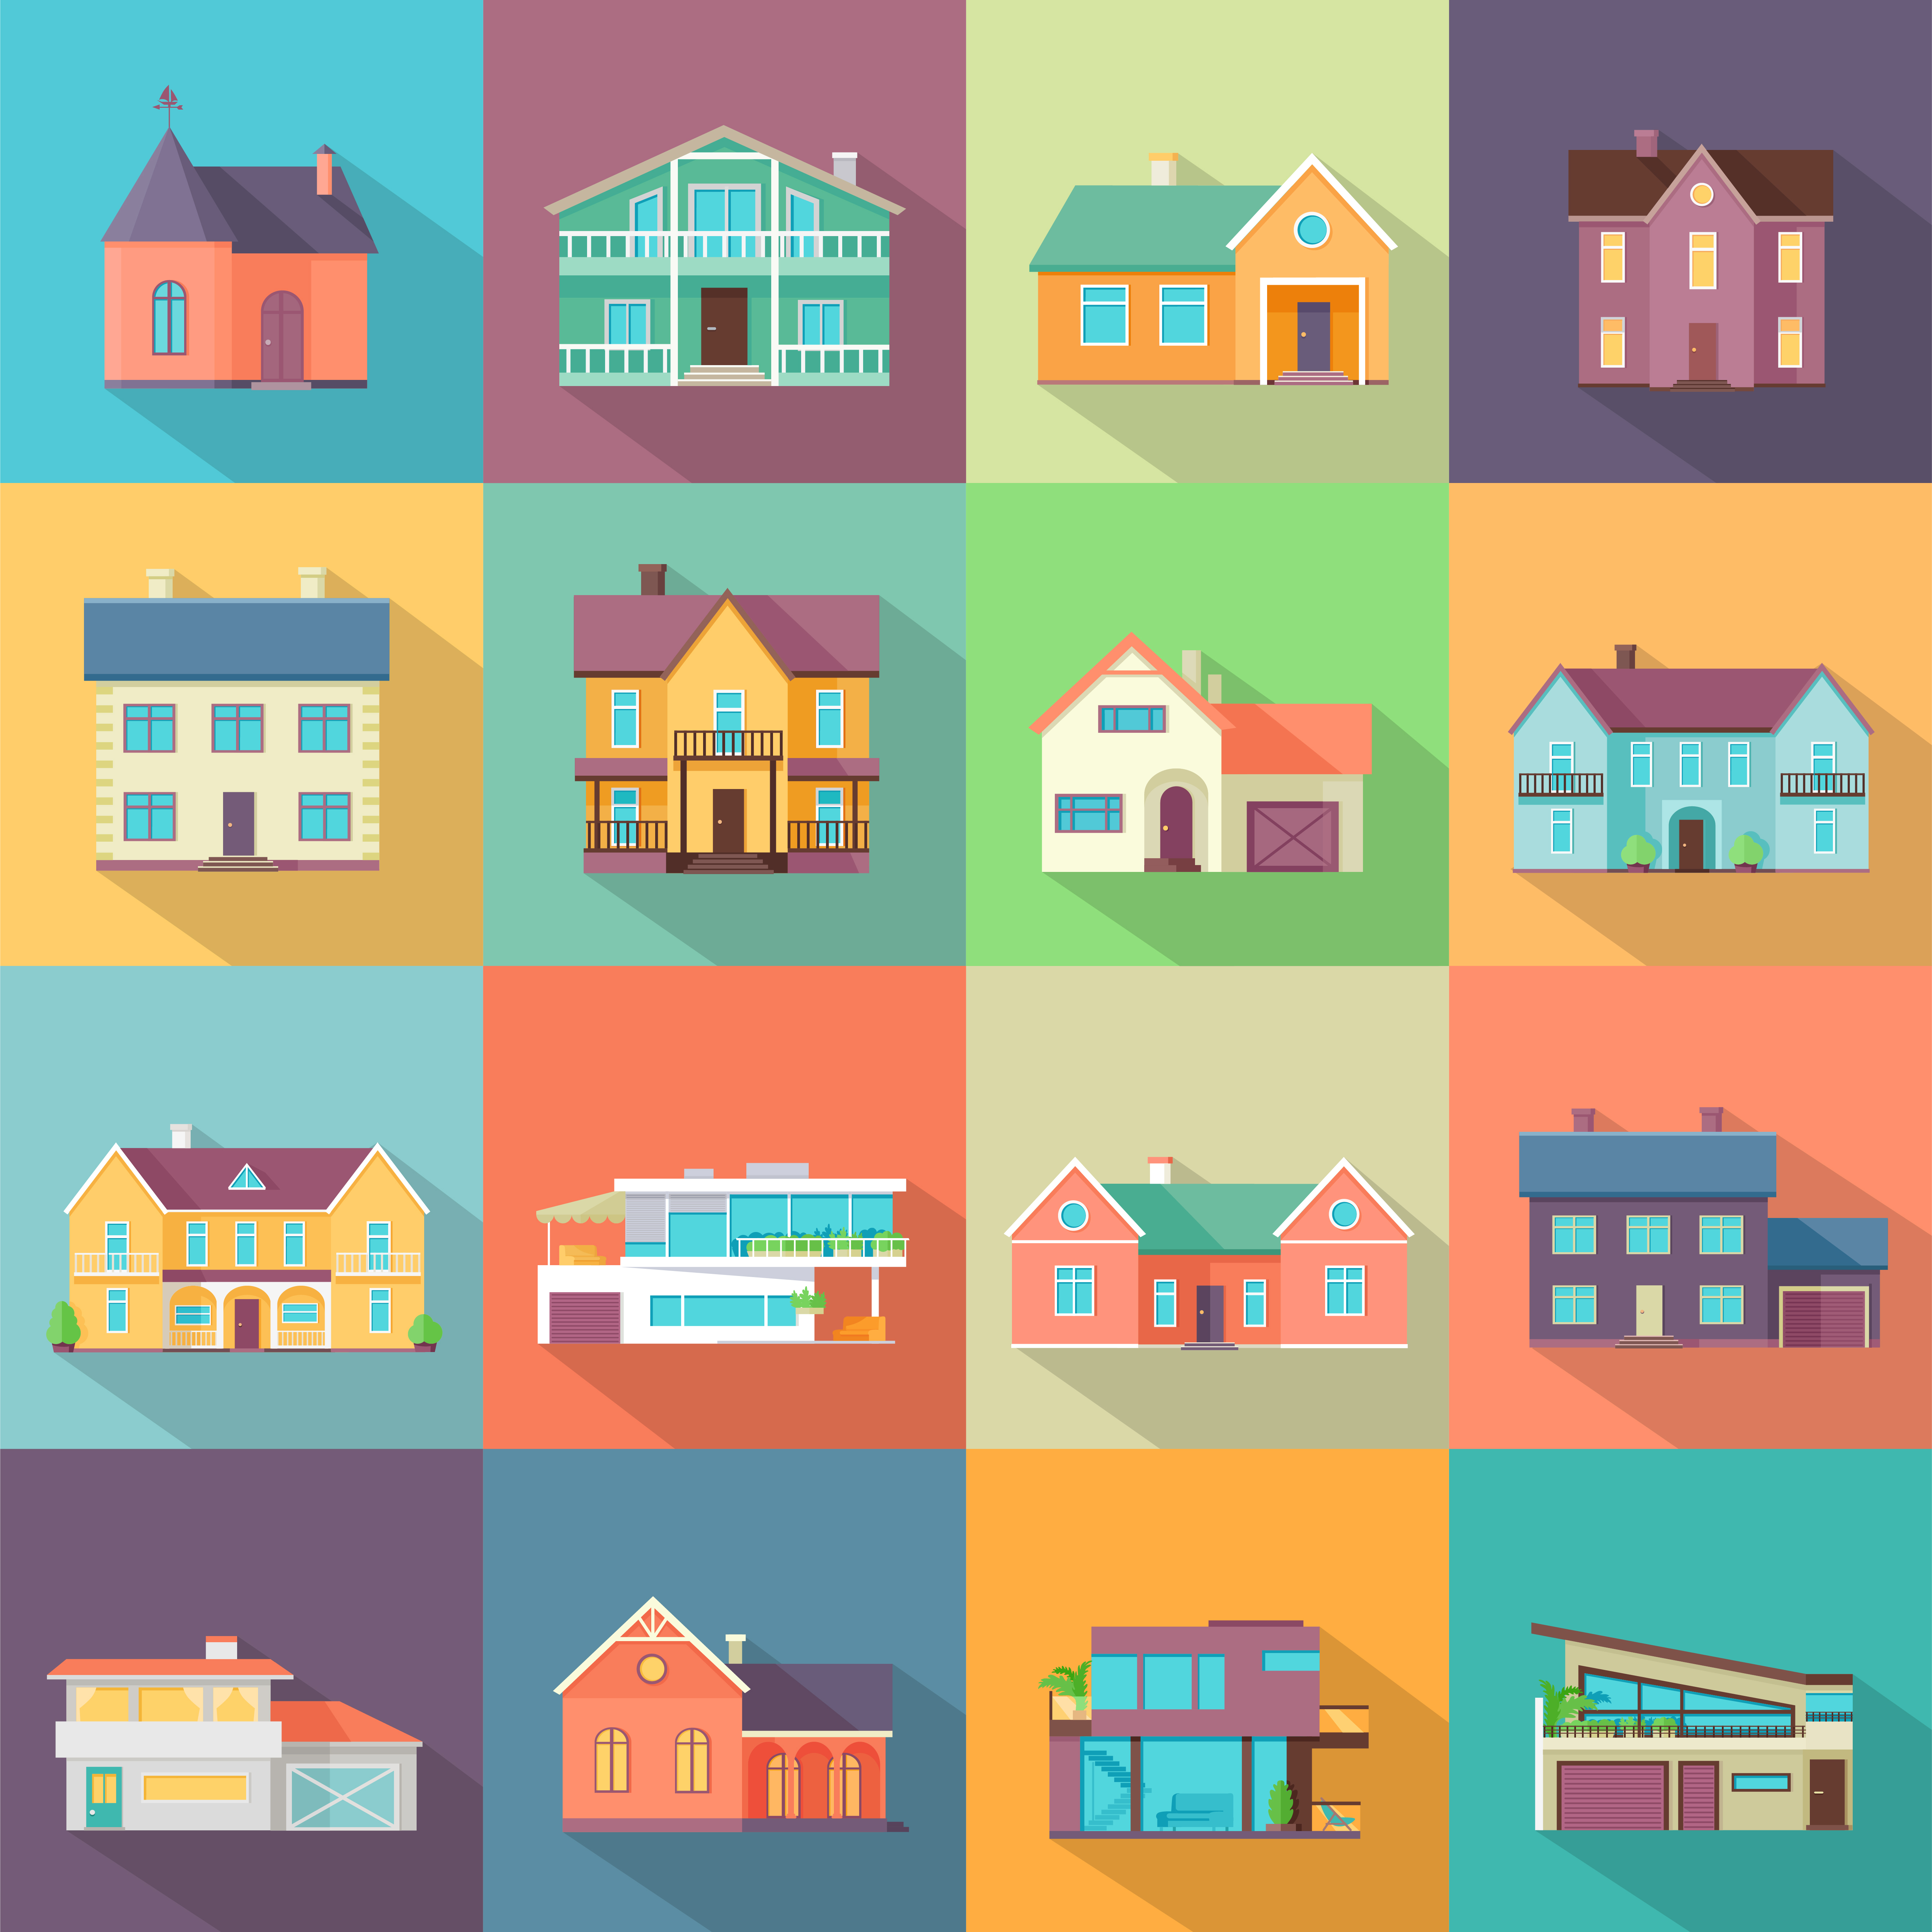 Different styles of home icons